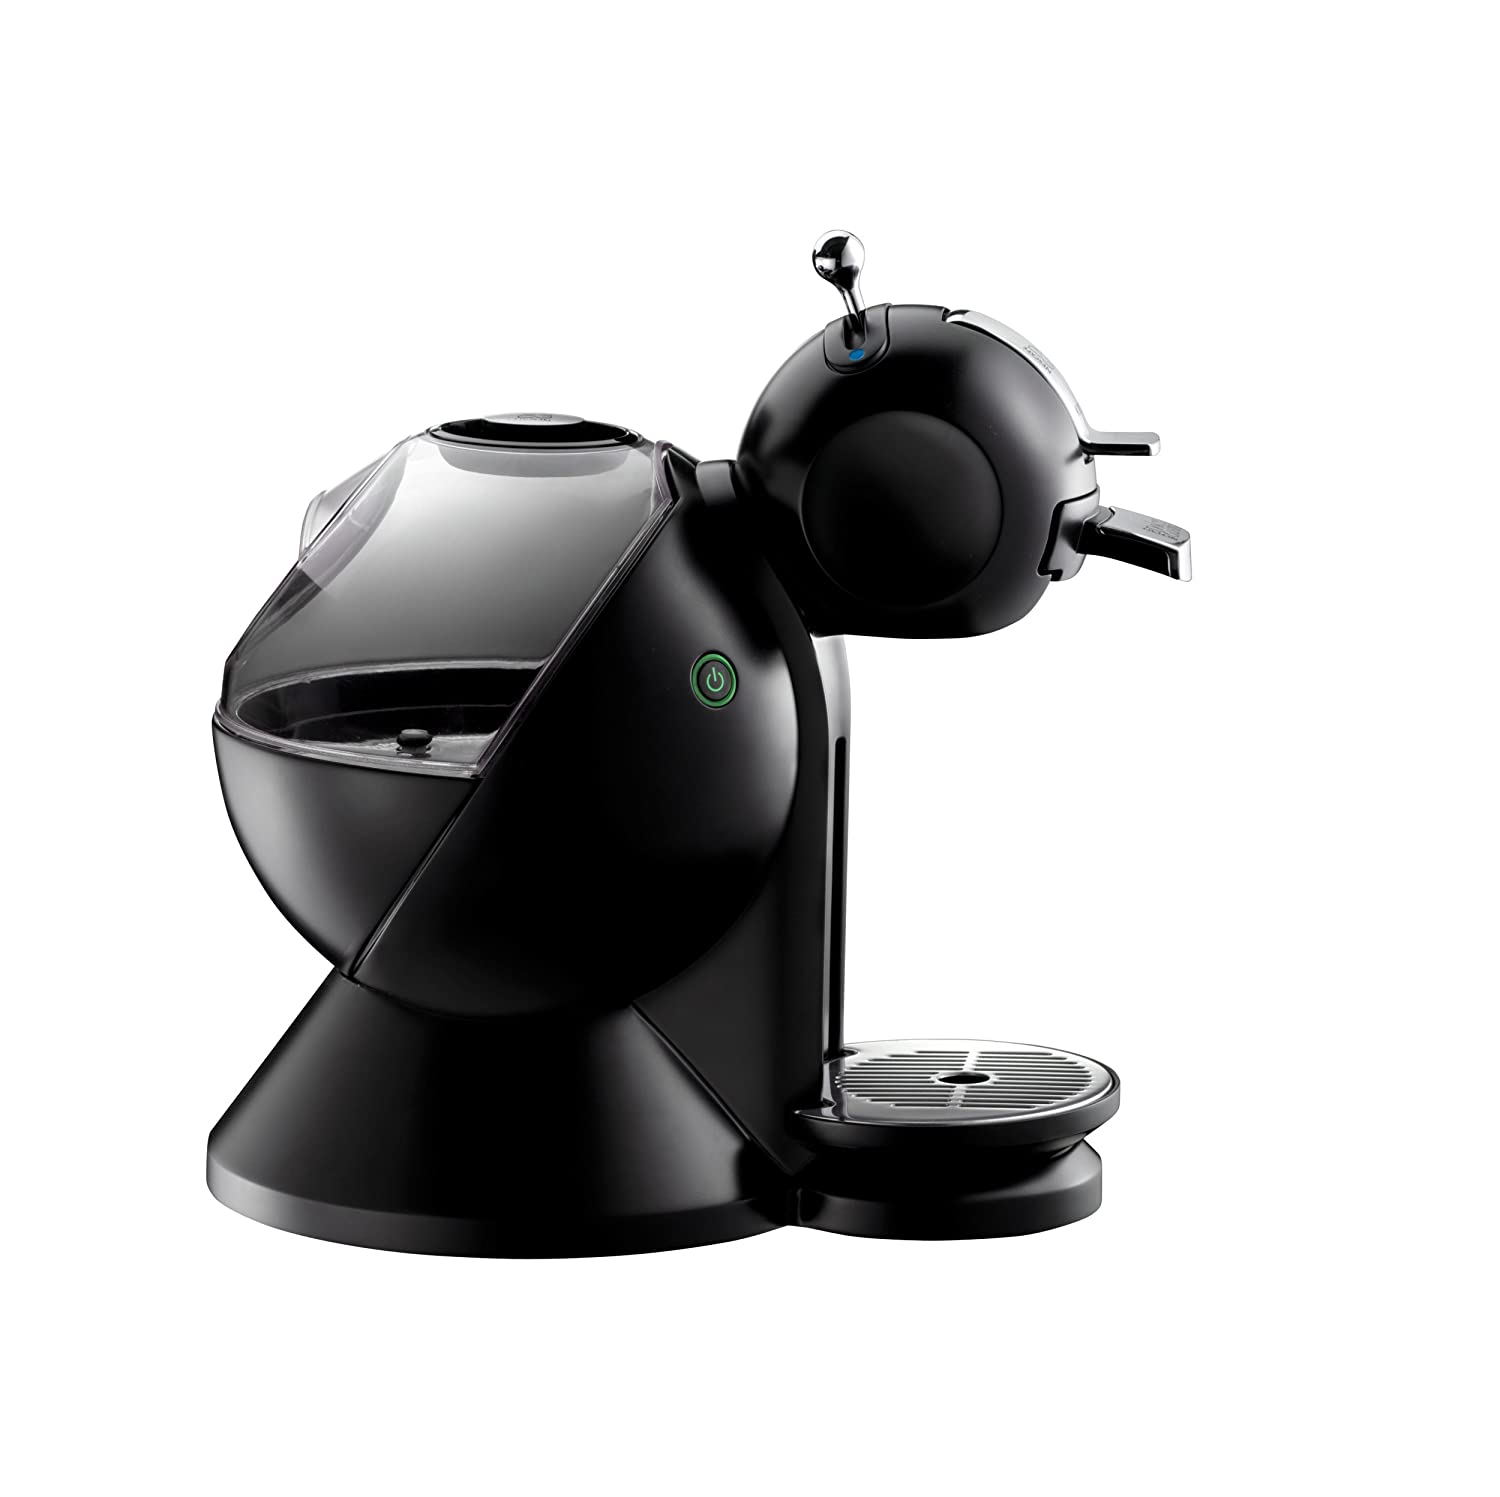 nescafe dolce gusto by krups kp210040 kp2100 coffee. Black Bedroom Furniture Sets. Home Design Ideas